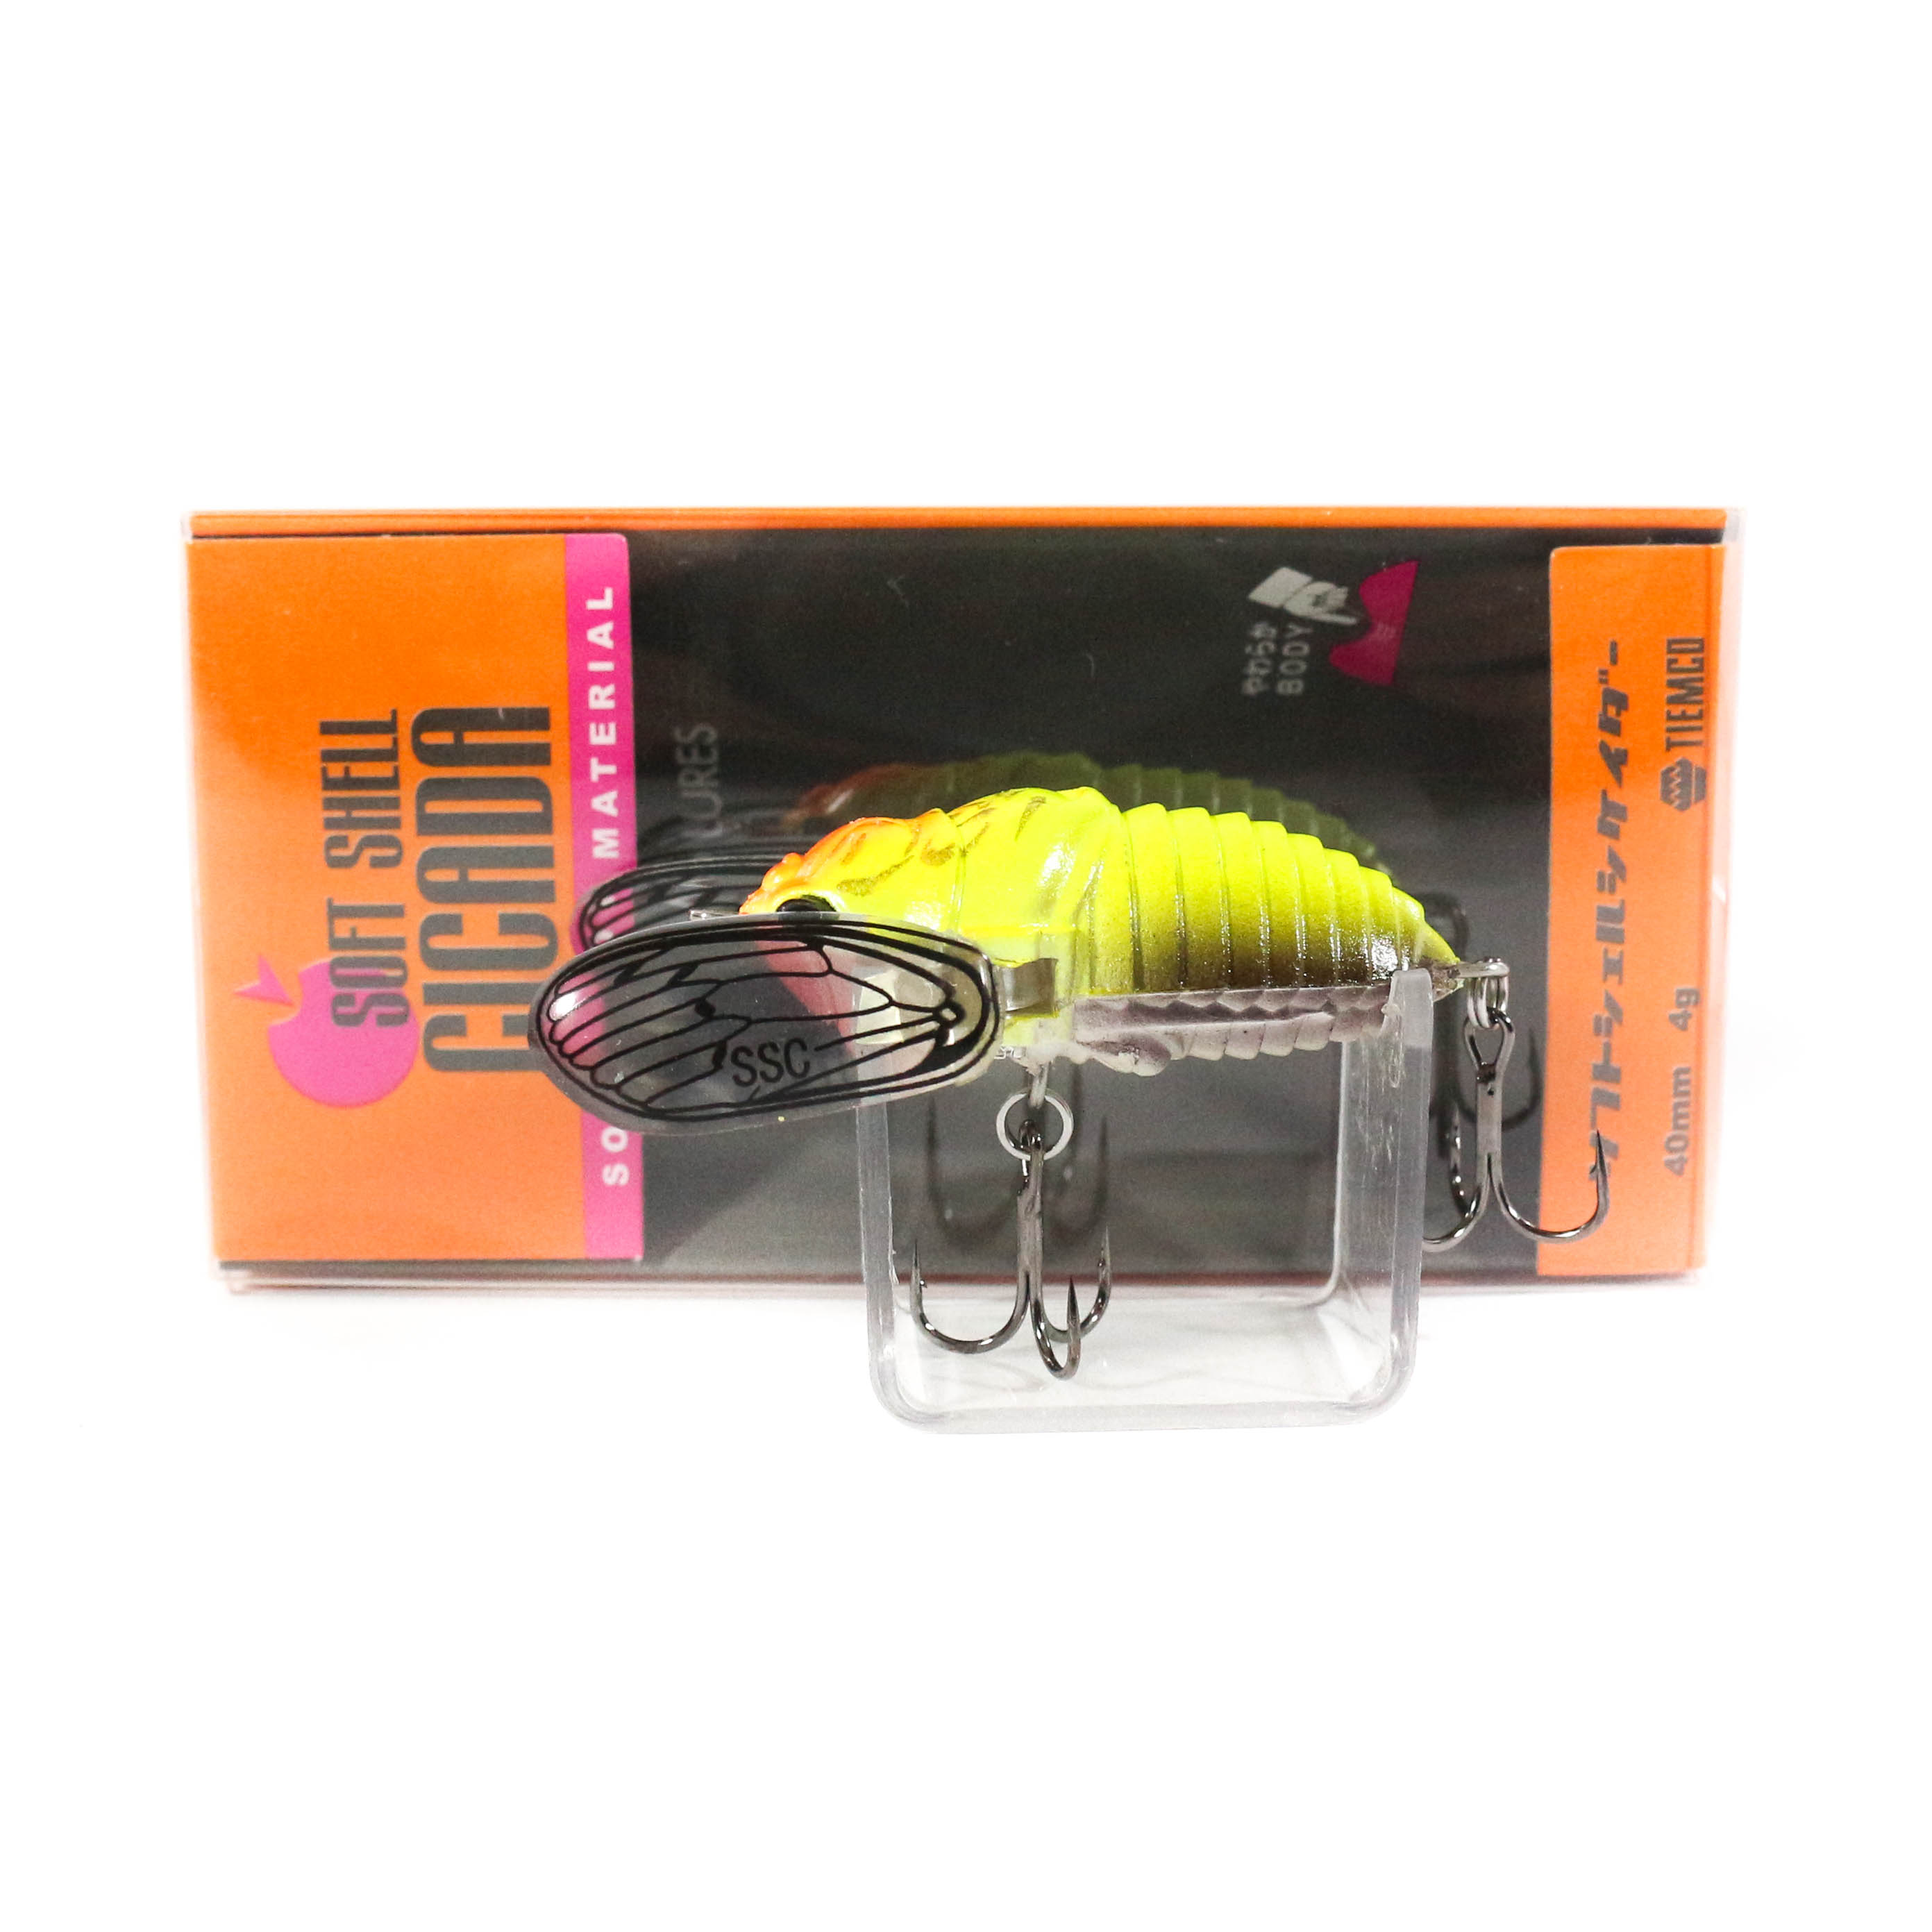 Tiemco Cicada Soft Shell Floating Lure SSC-181 (9570)